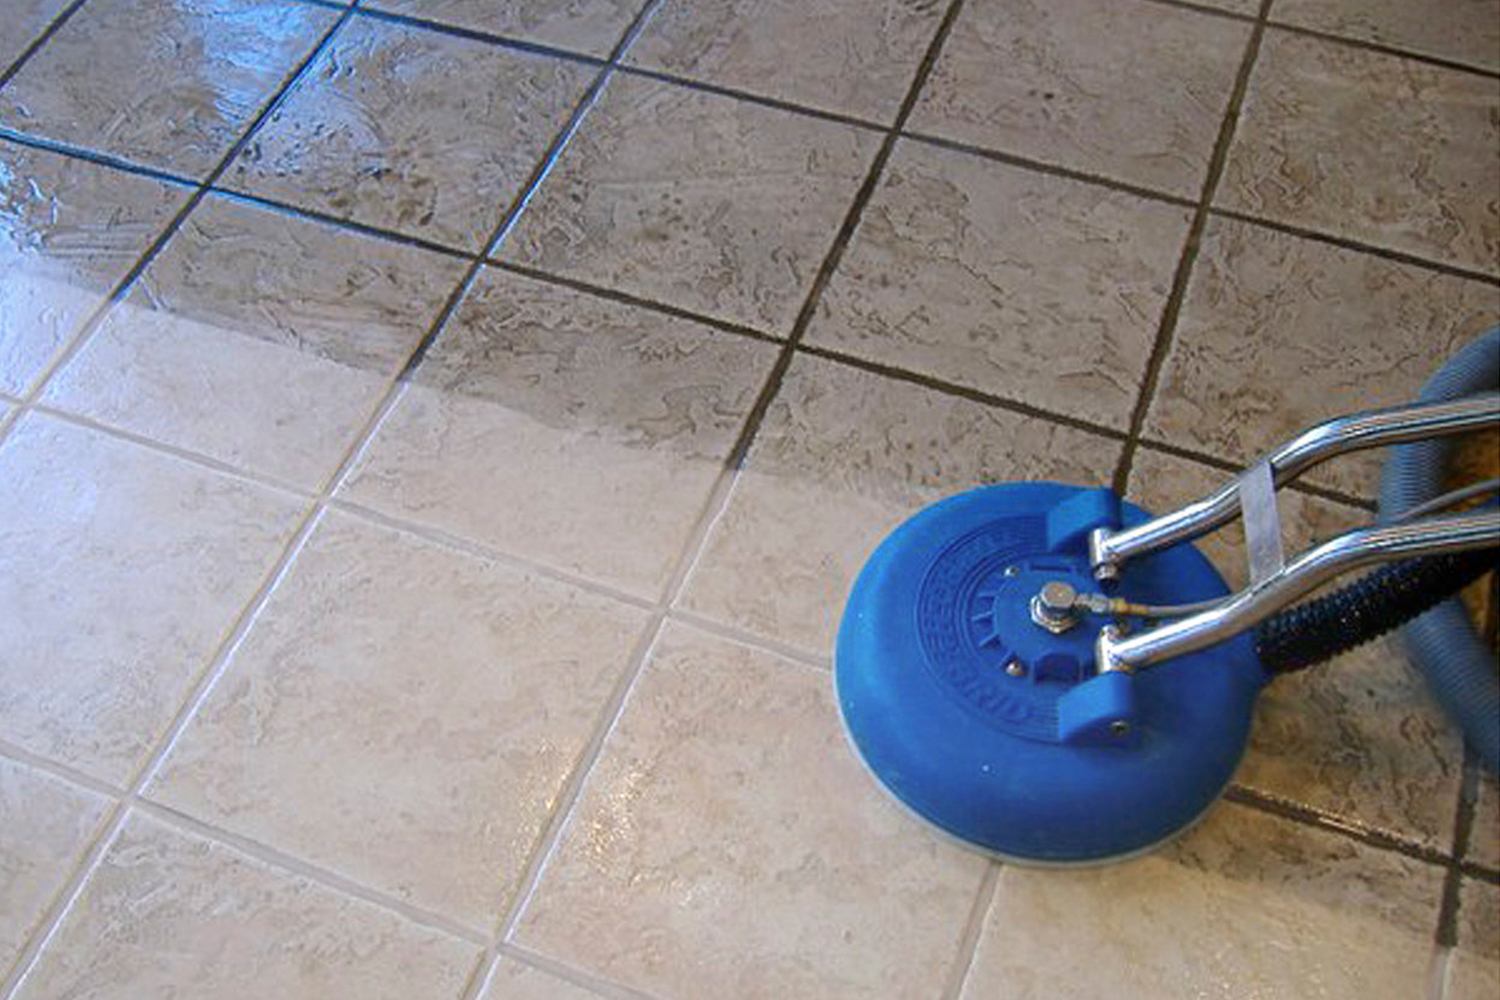 Hard surface cleaning oneway property restoration cleaning tile floors by hand is hard work dirty messy uncomfortable and impossible to get that desired deep clean result grout is a porous material and dailygadgetfo Image collections